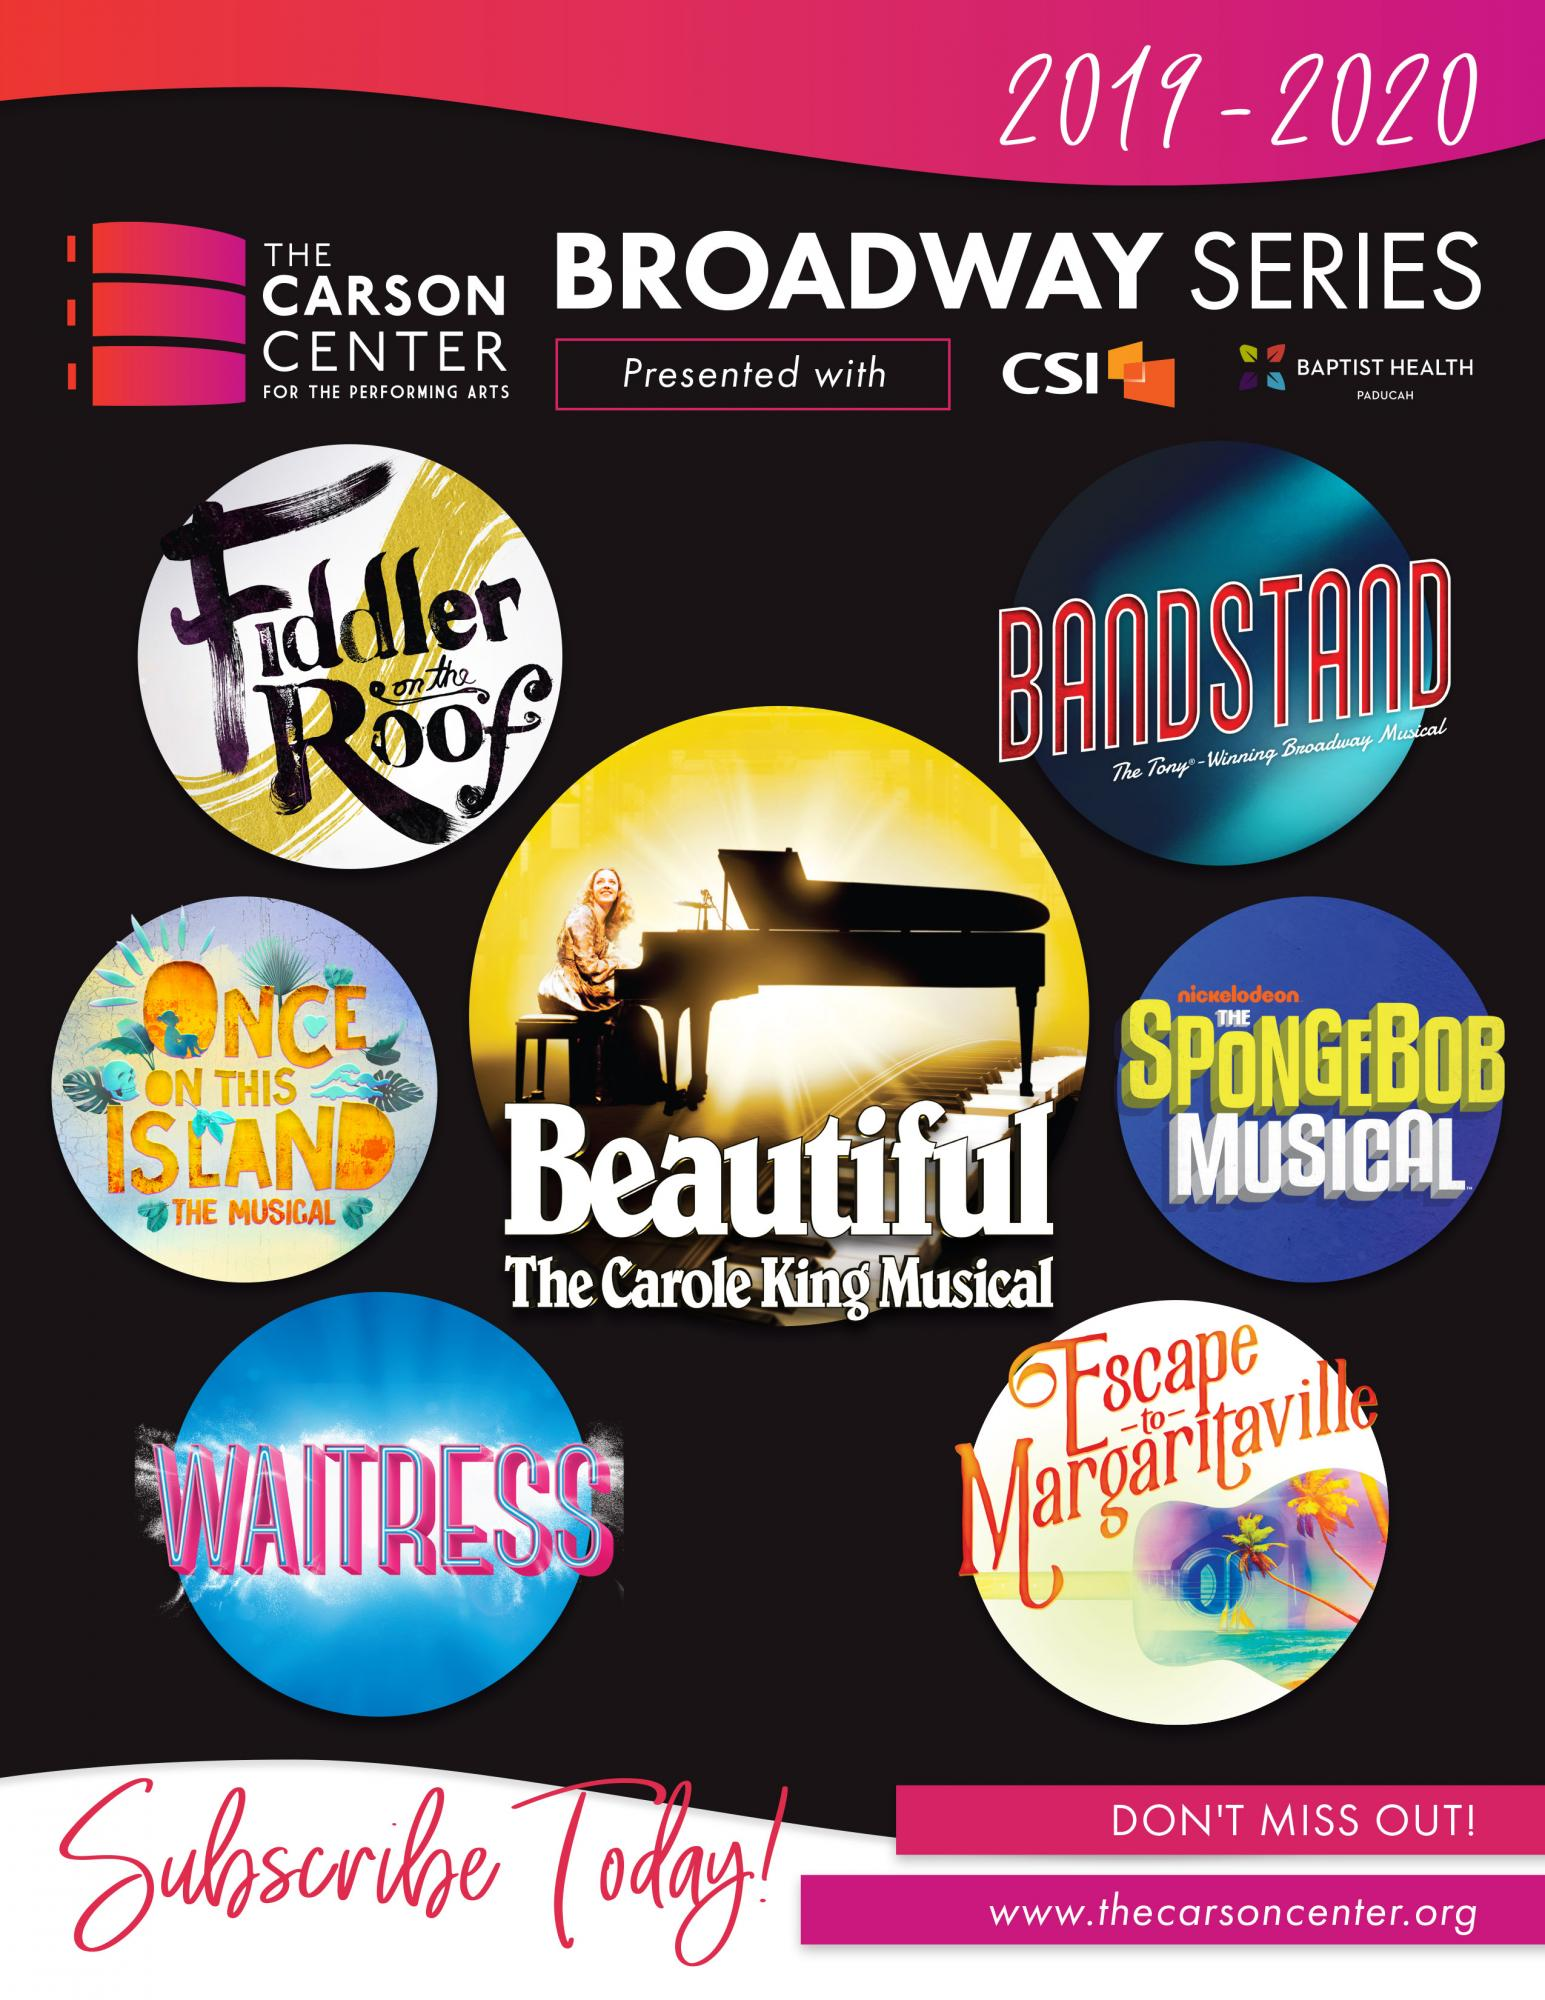 Used Cars Paducah Ky >> 2019-2020 Broadway Season - New Subscribers | The Carson Center